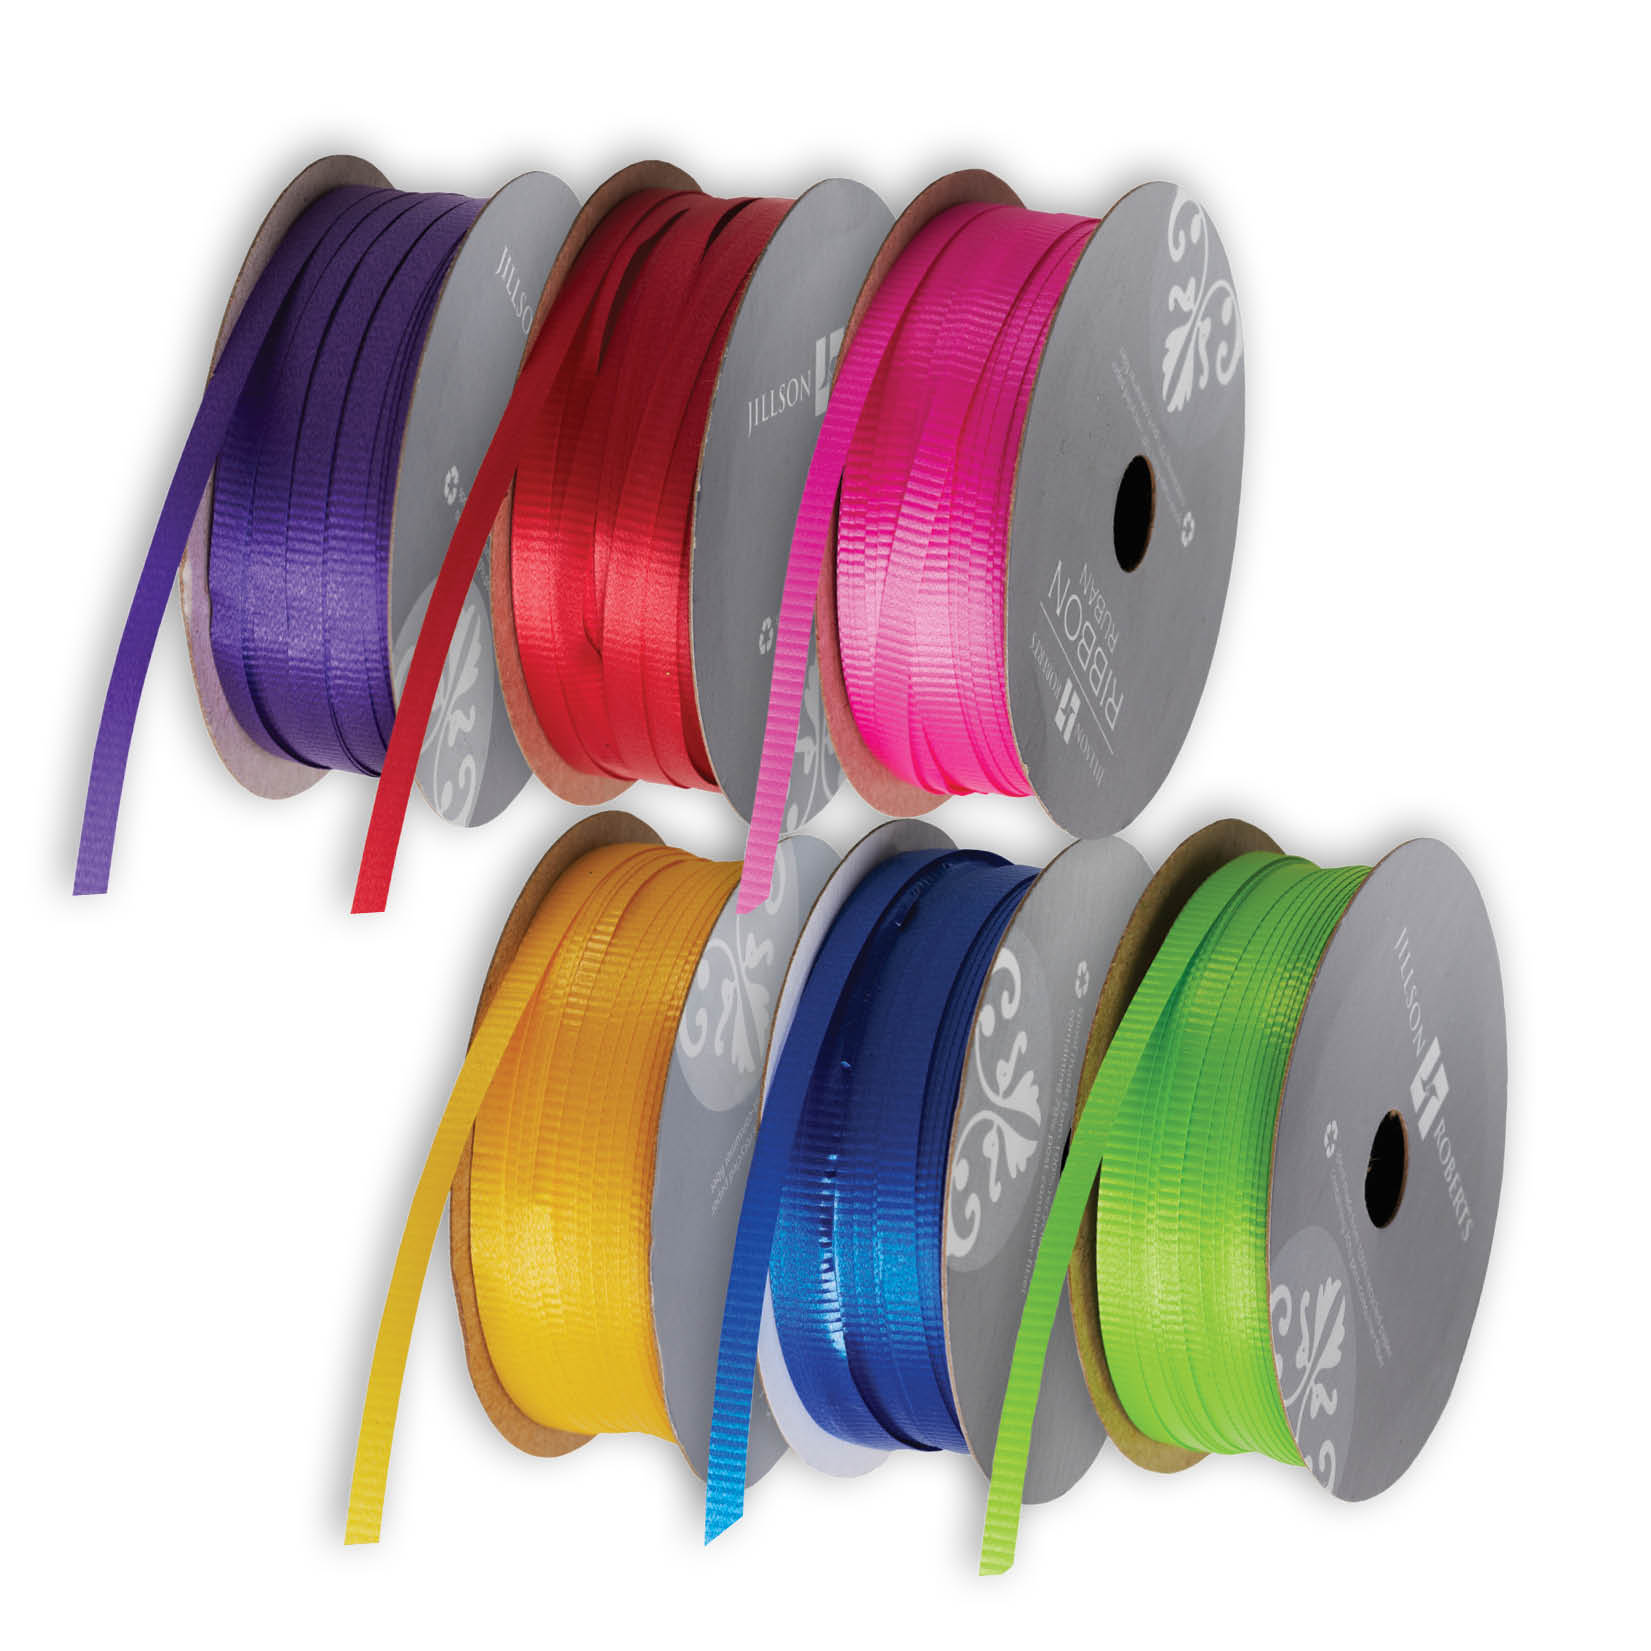 Jillson & Roberts Solid Color Poly Curling Ribbon Assortment, Primary (6 Spools)